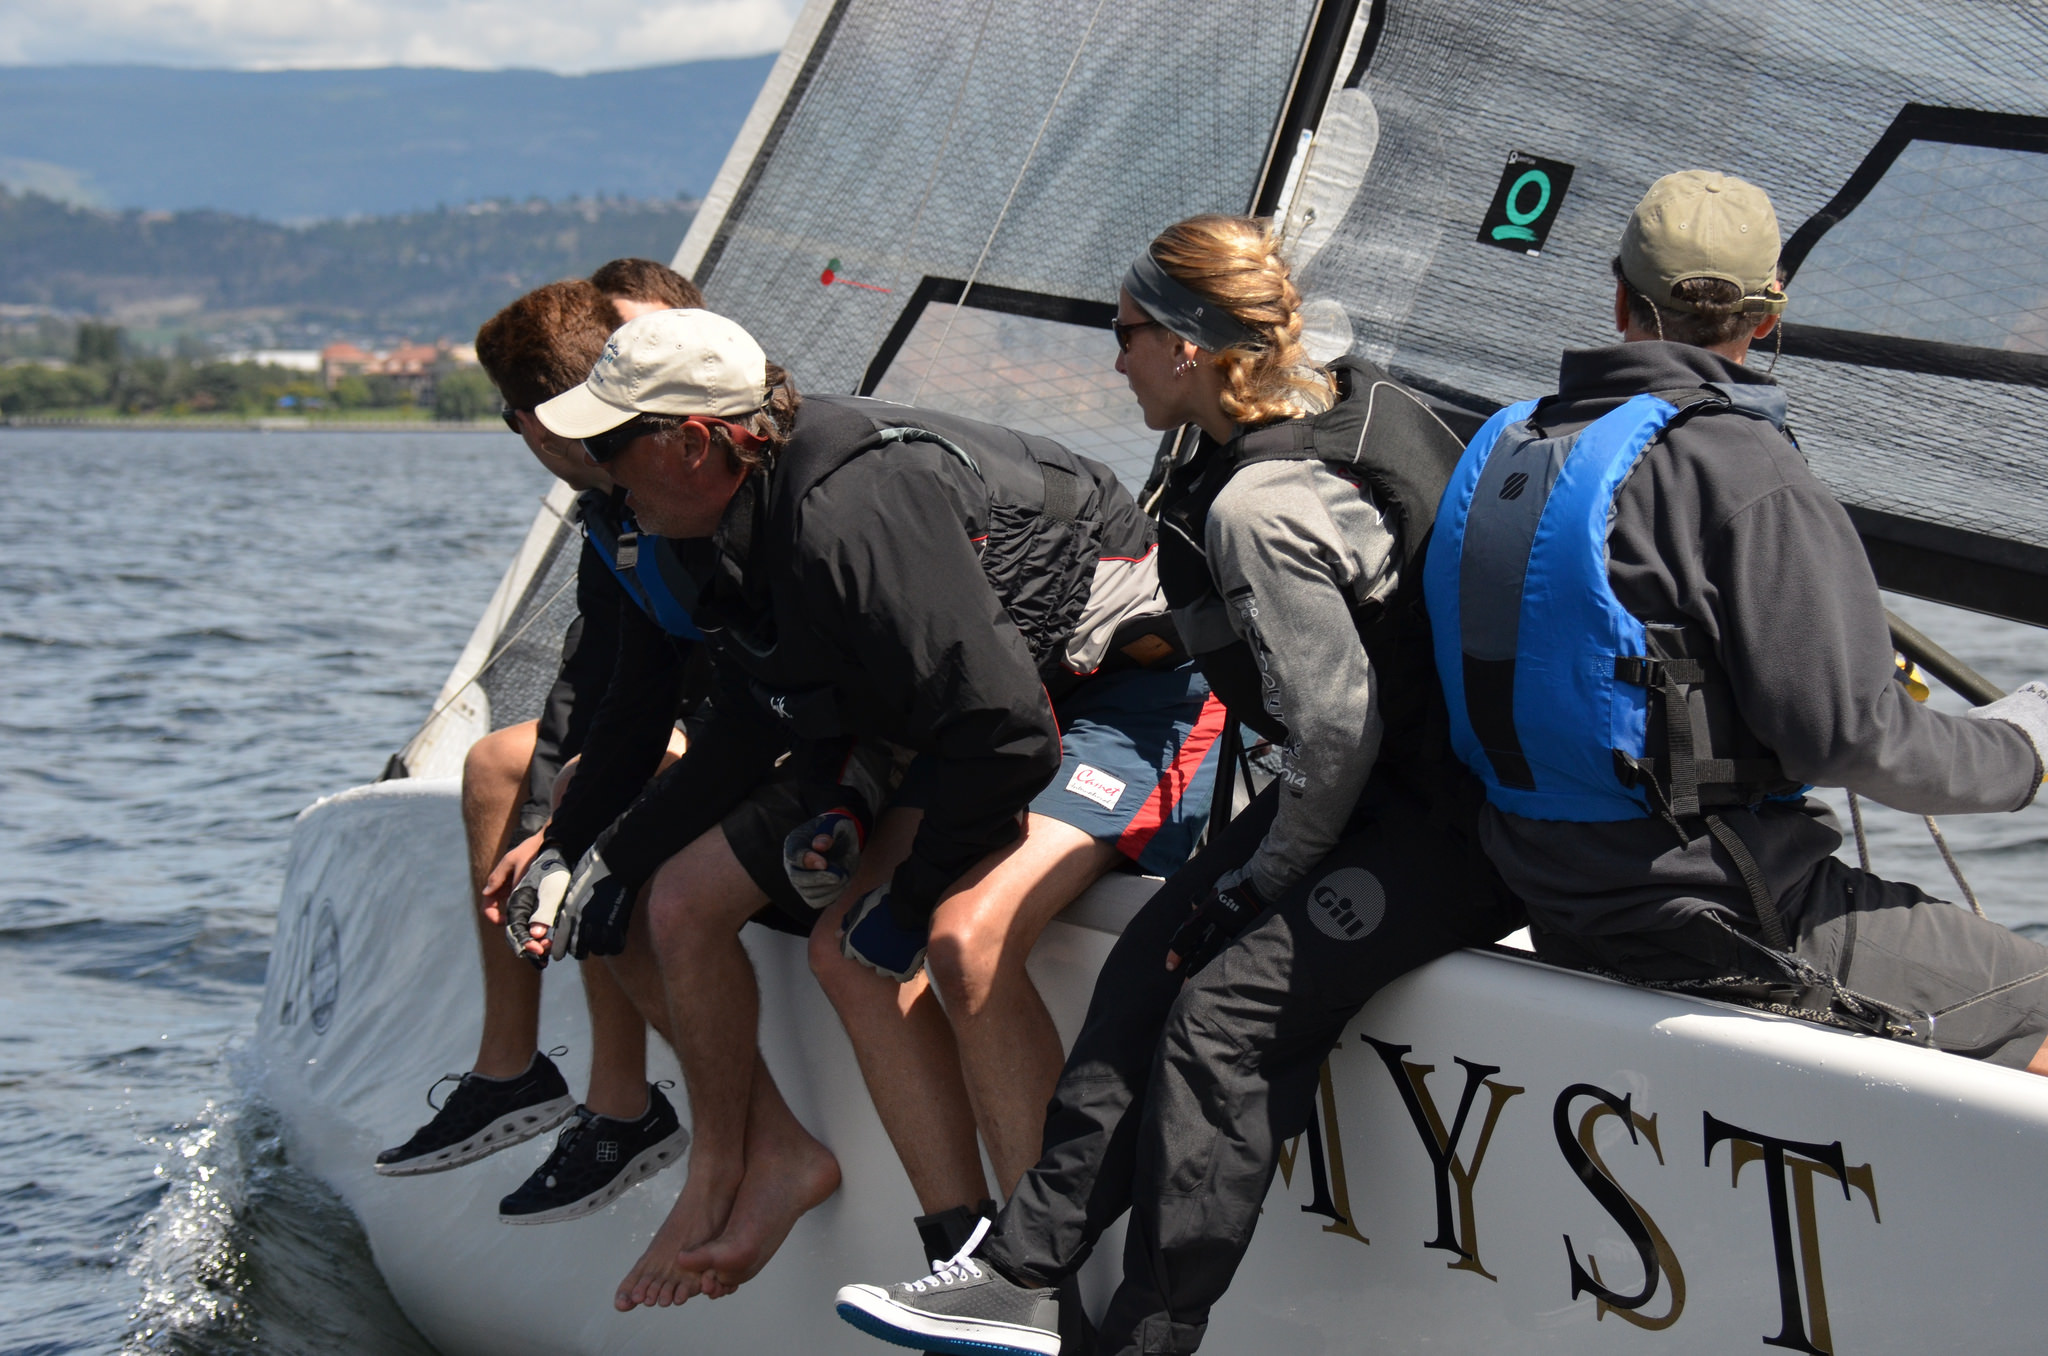 Quantum Sails Aboard as Official Sailmaker for the 2017 MELGES24 Canadian National Championship, Stage 3 of the NorAm Tour.